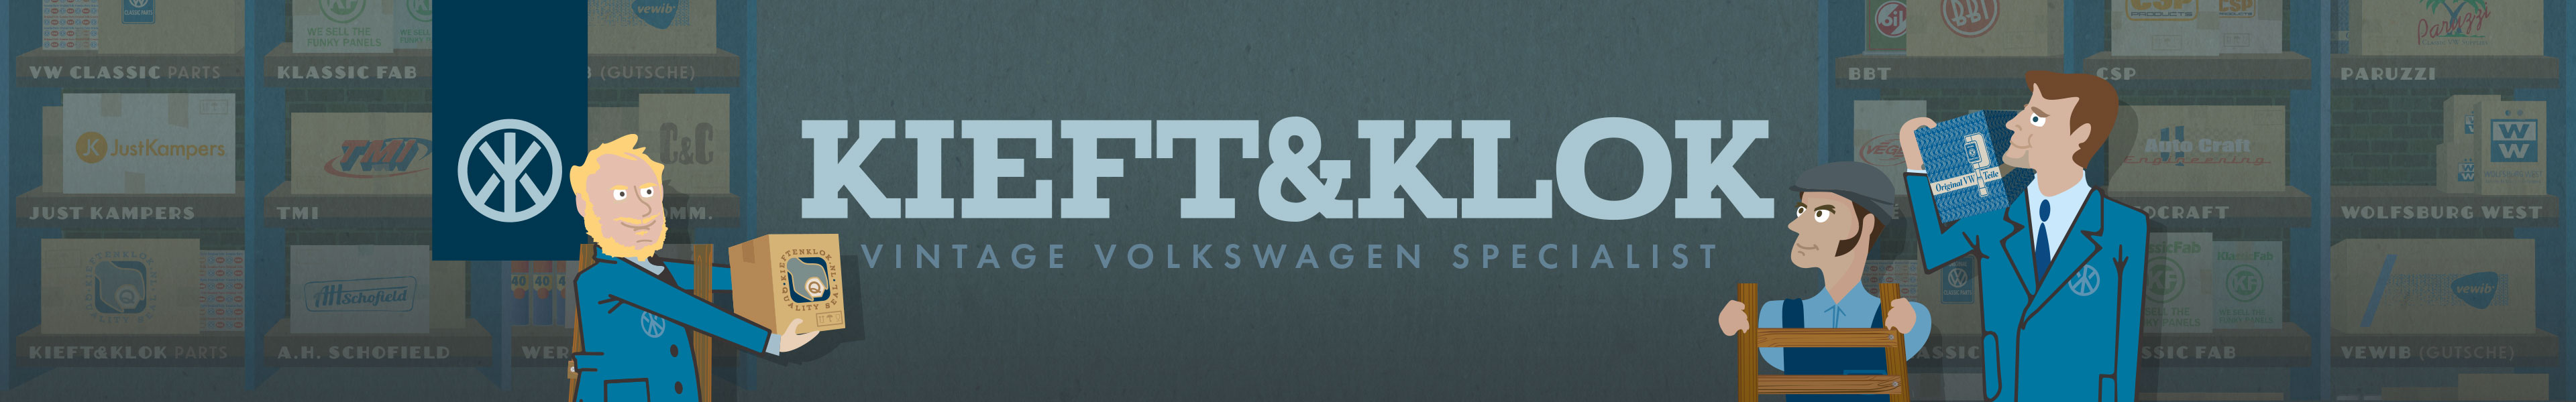 Kieft & Klok Parts